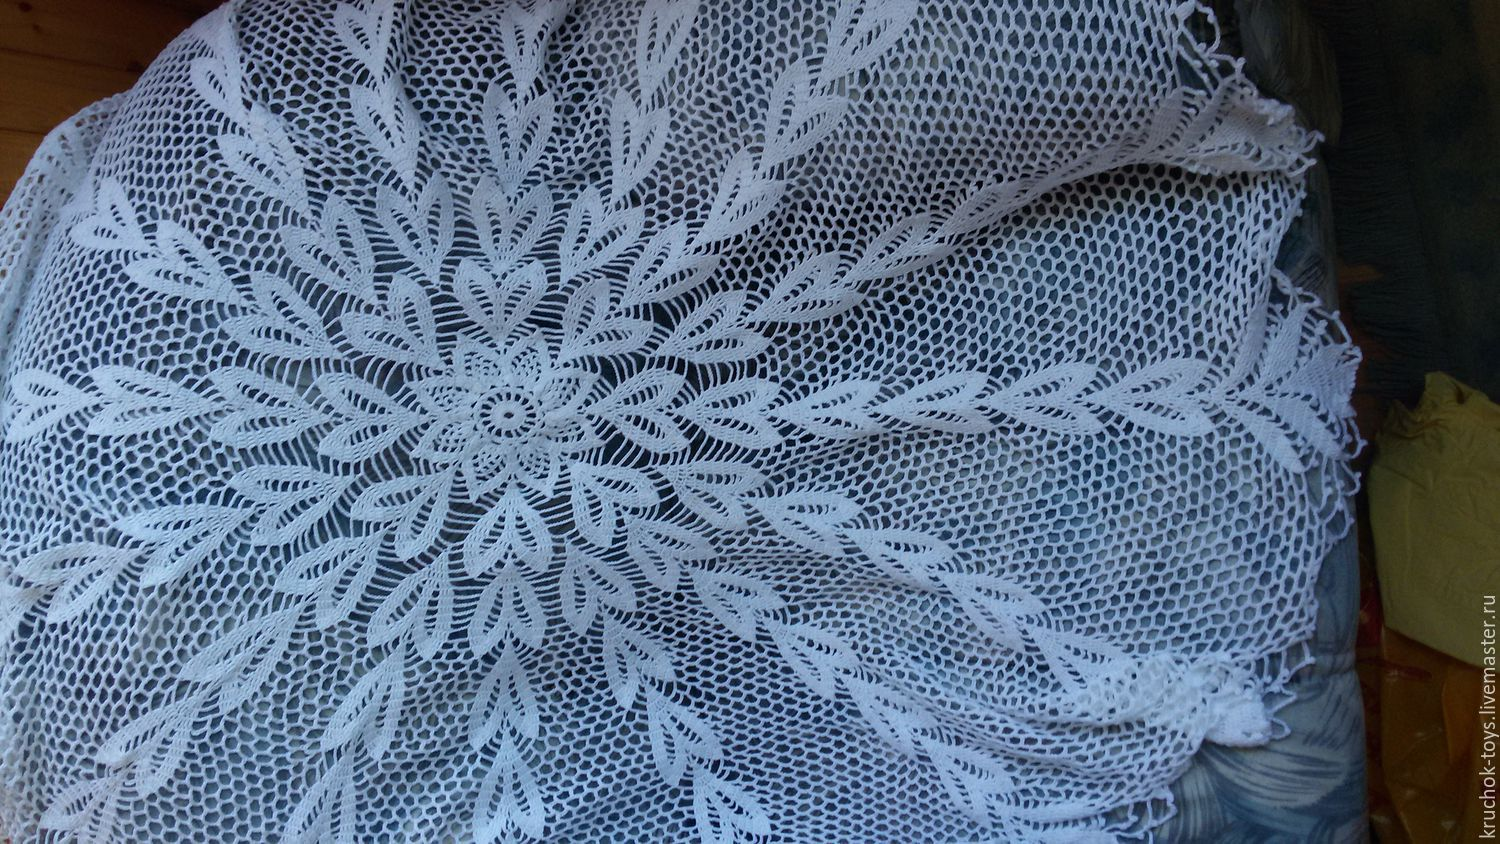 Crochet Tablecloth Shop Online On Livemaster With Shipping